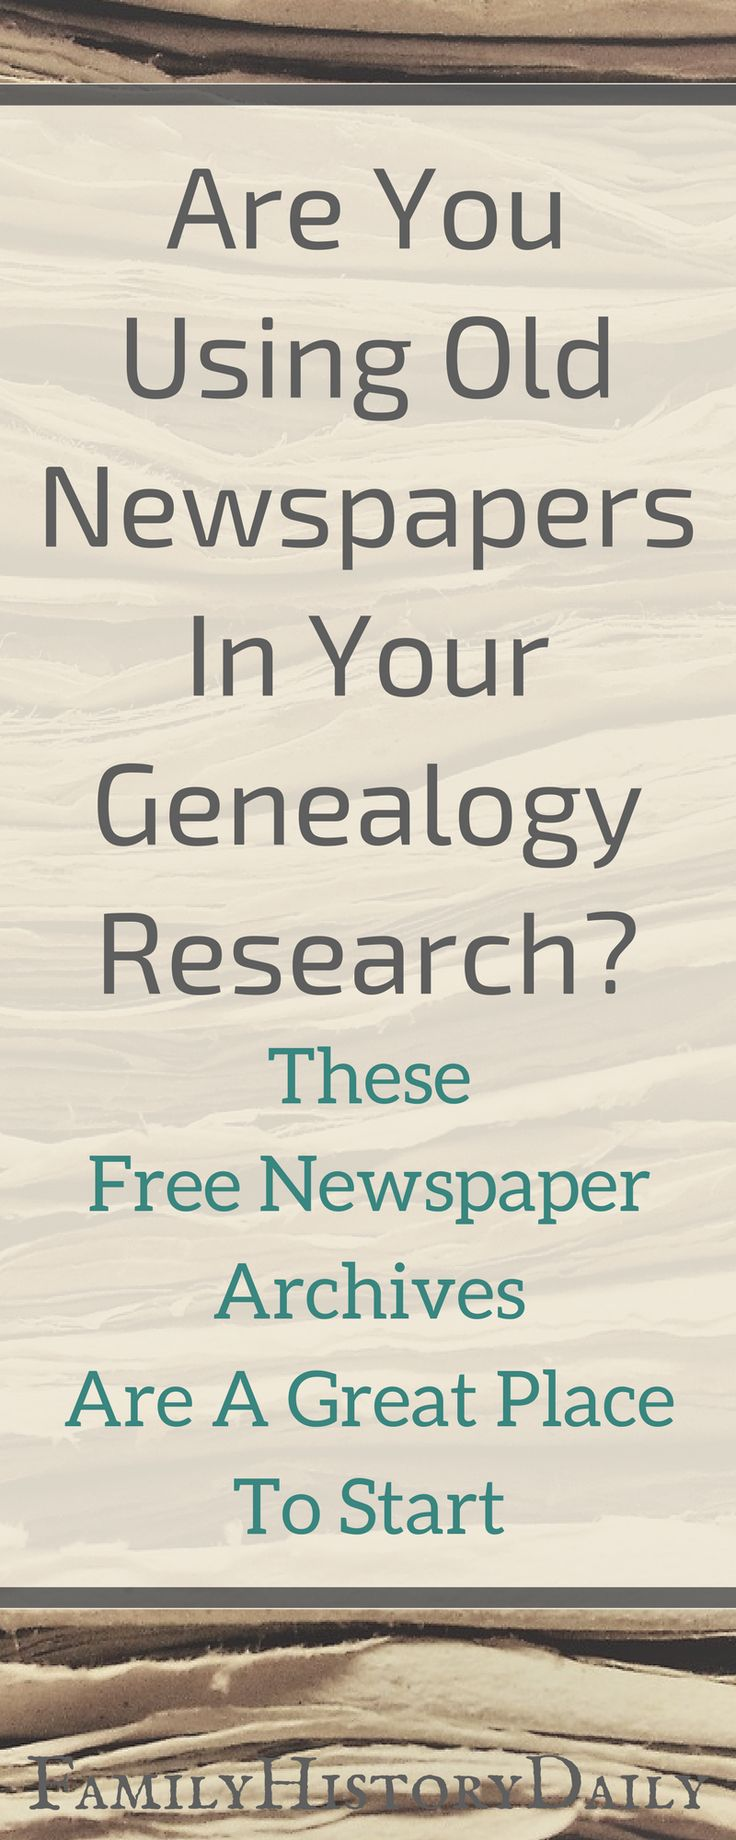 Free newspaper archives can be a powerful genealogy research tool. #genealogyresearch #freegenealogy #ancestry #familyhistory